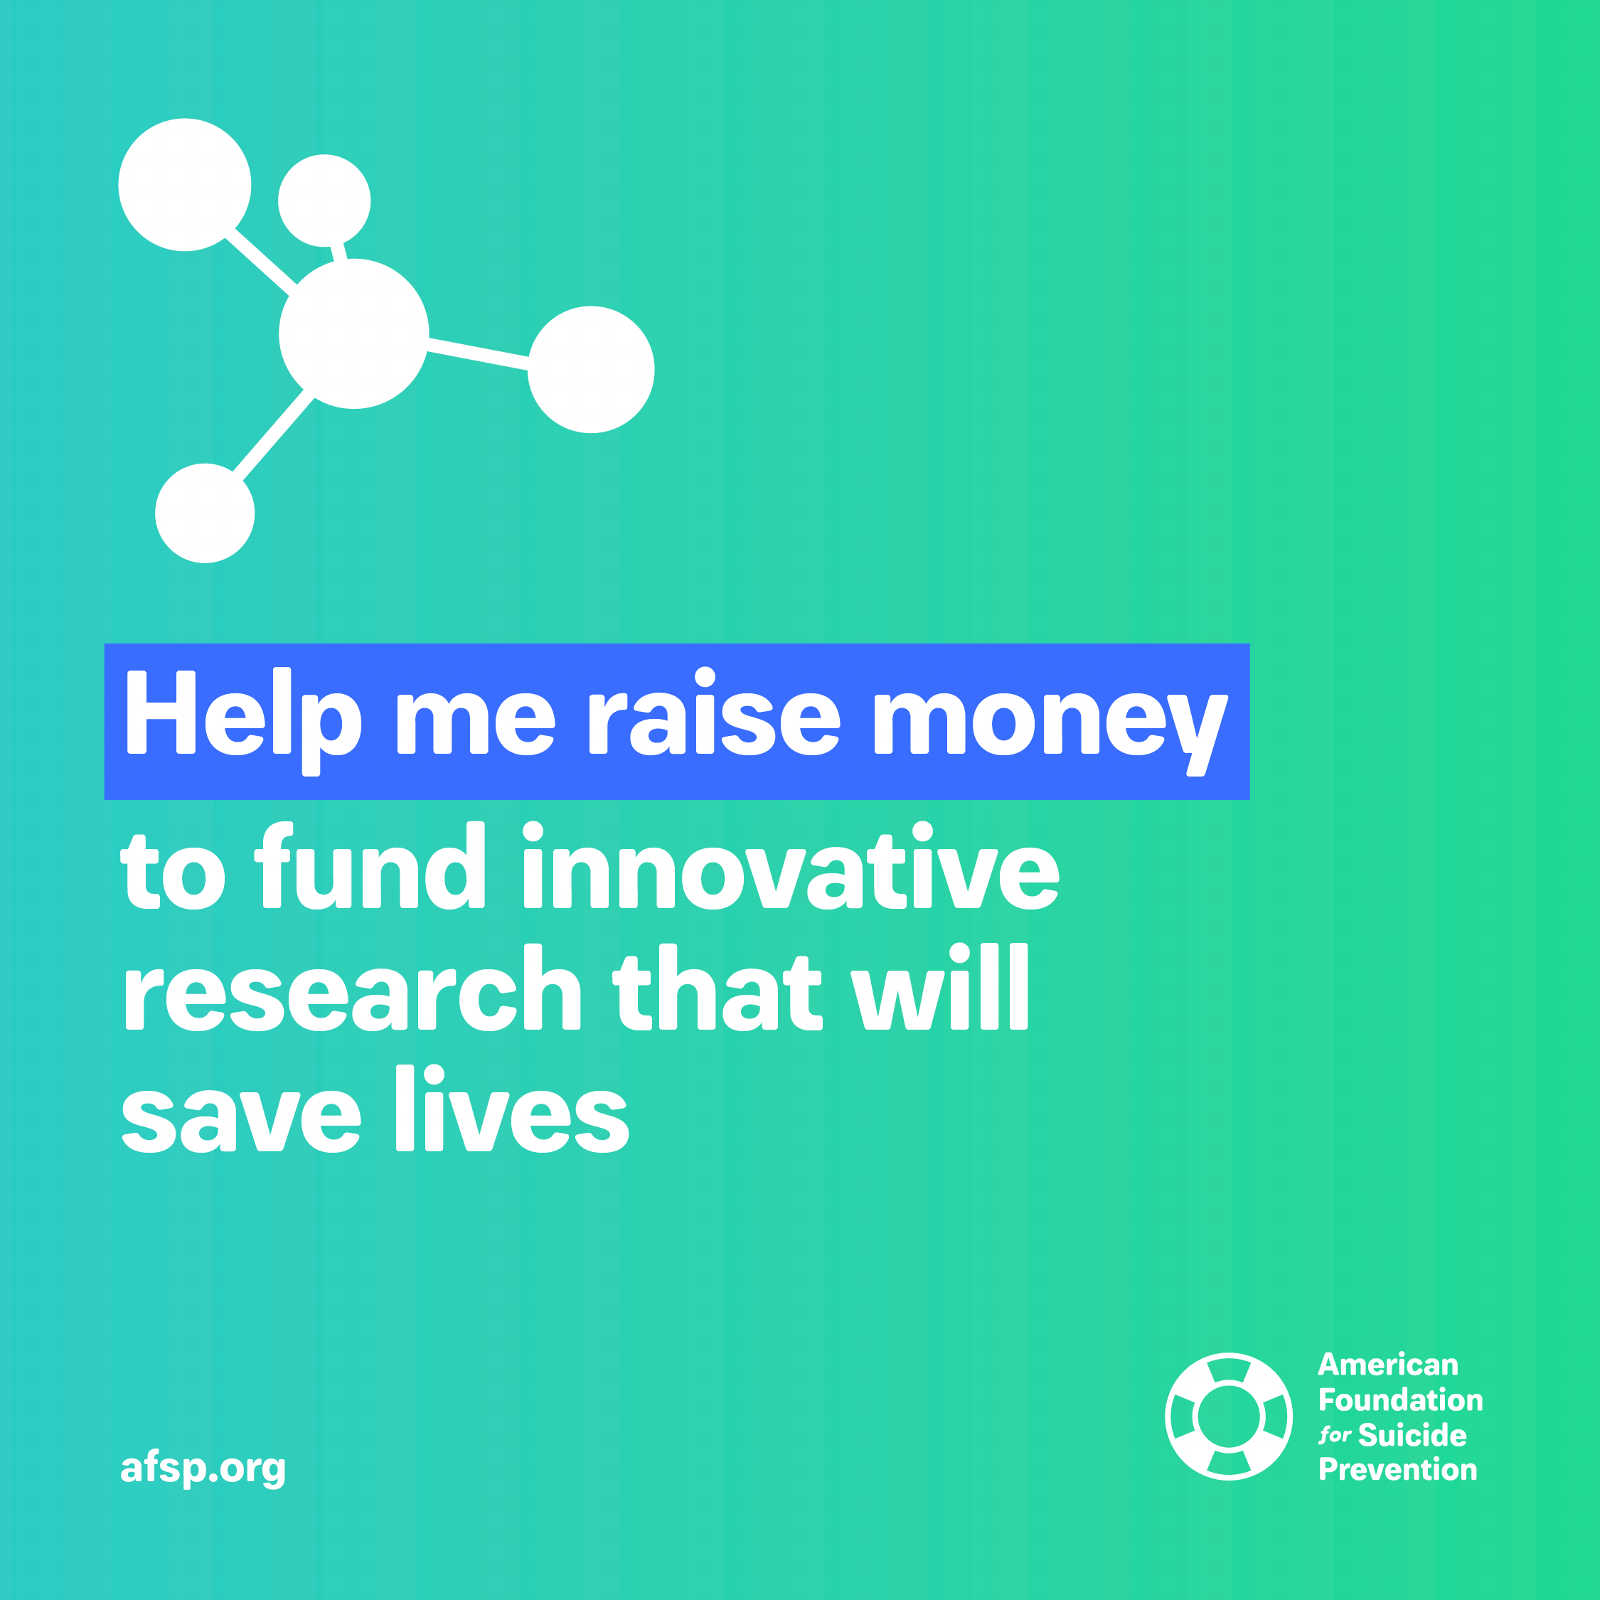 Help me raise money to fund innovative research that will save lives